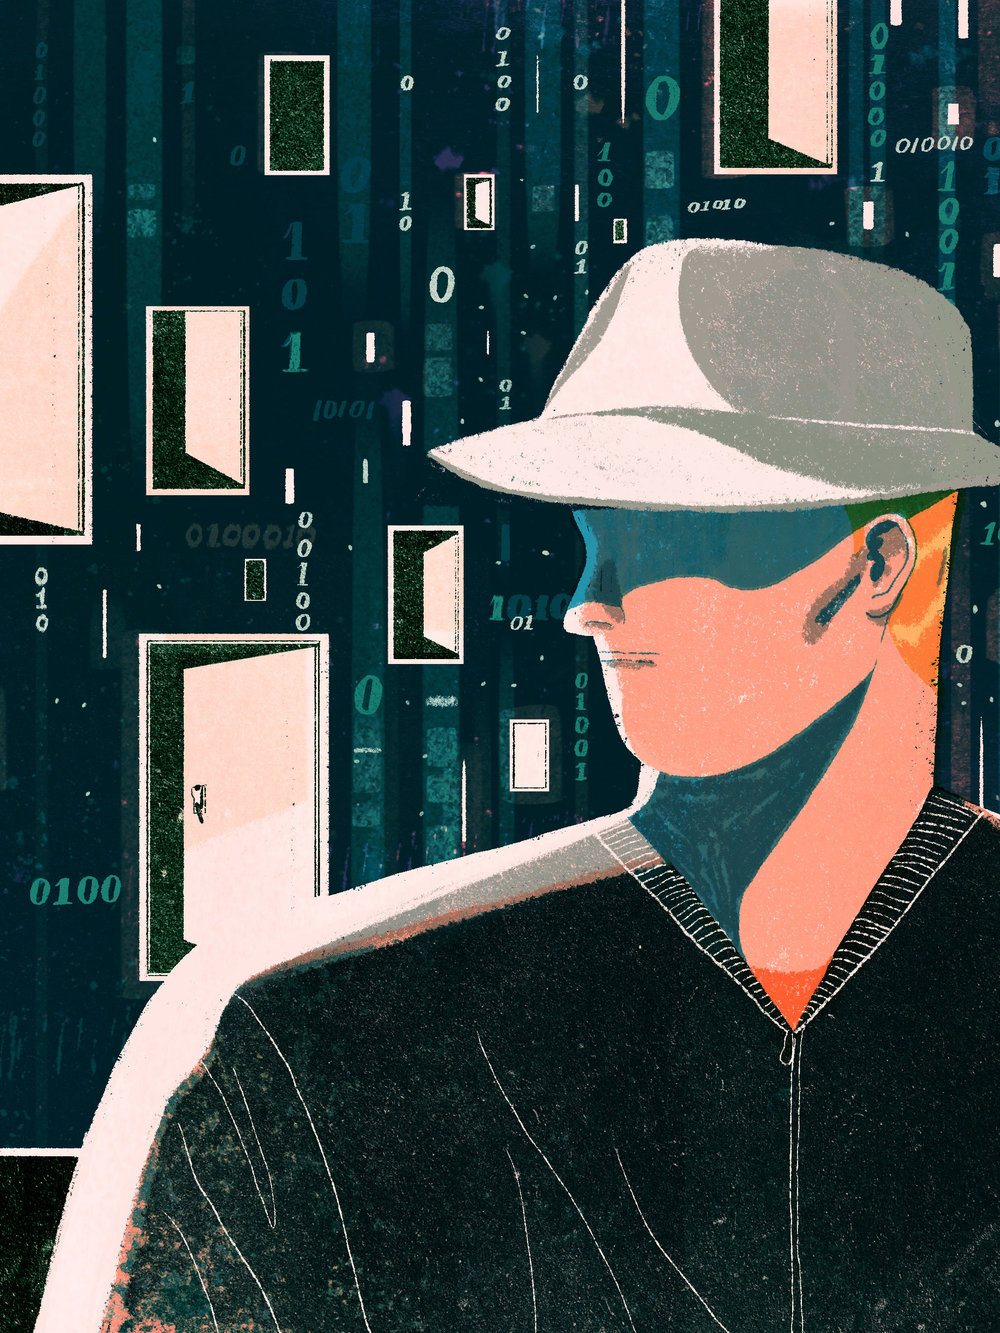 An image from WIRED's The Hotel Room Hacker